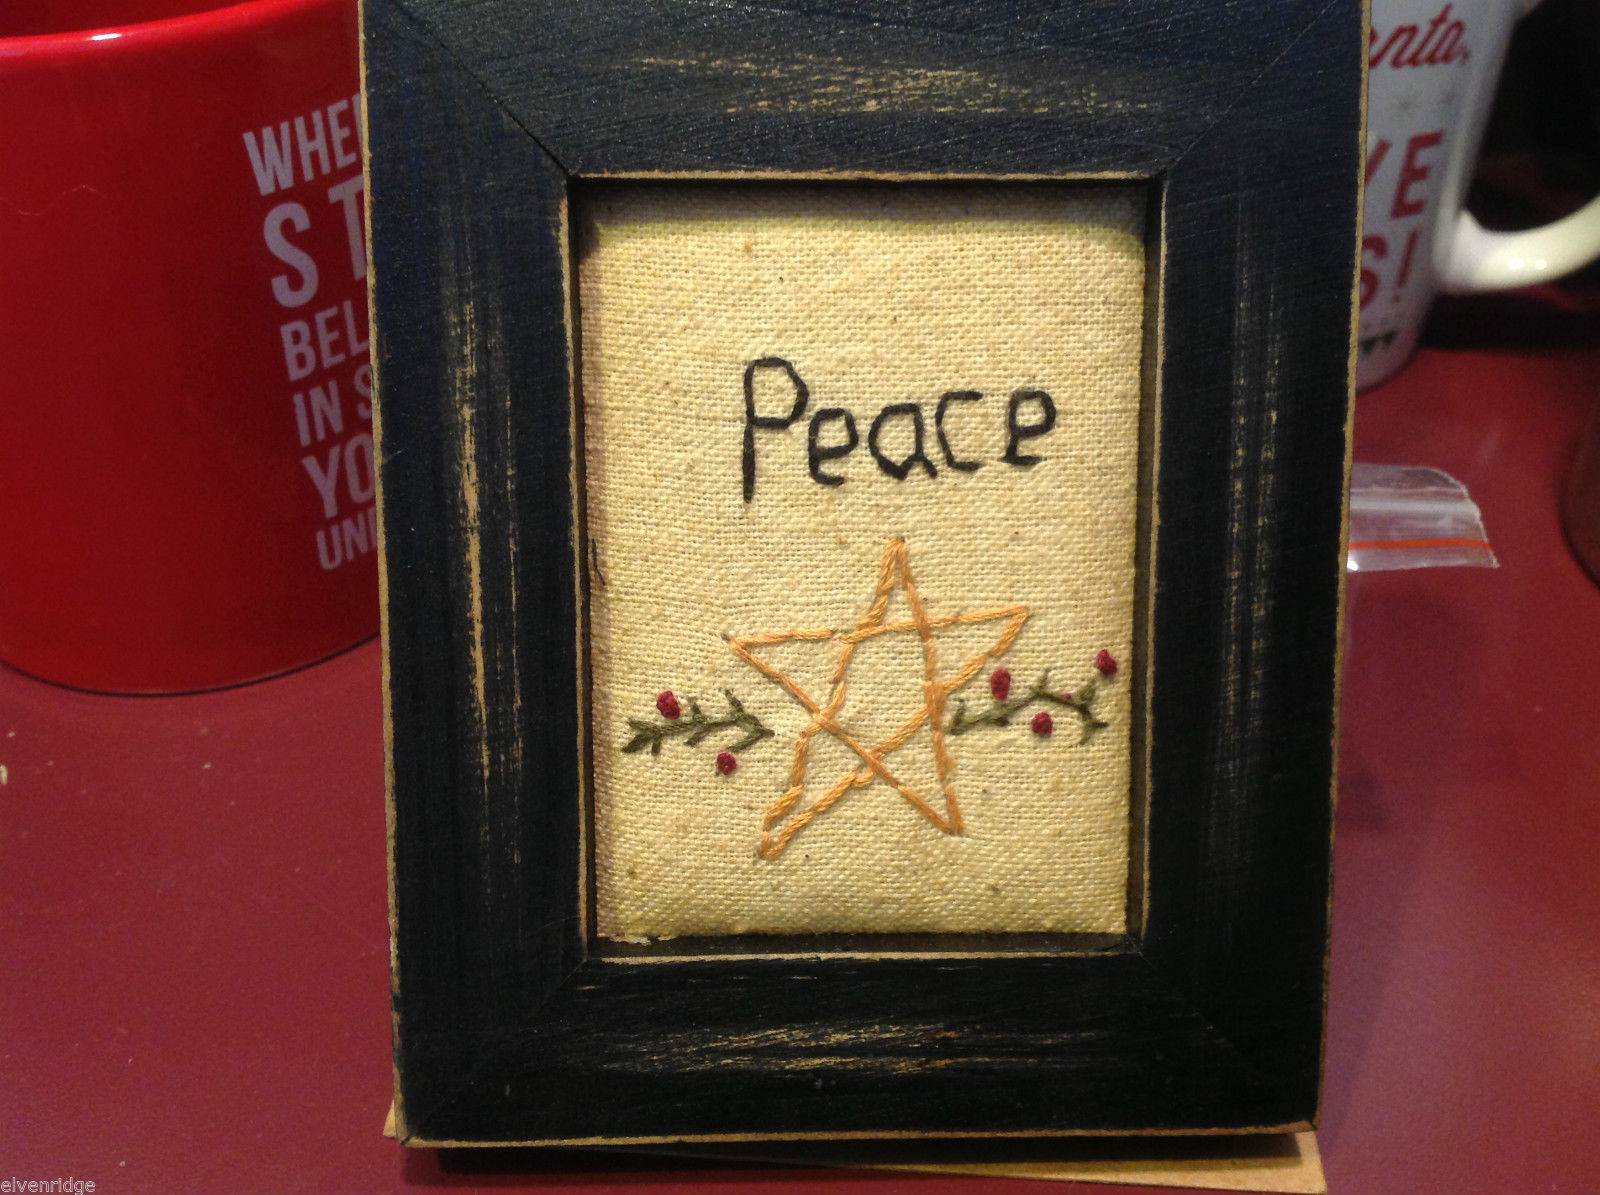 Vintage look framed fabric stitchery with PEACE and star